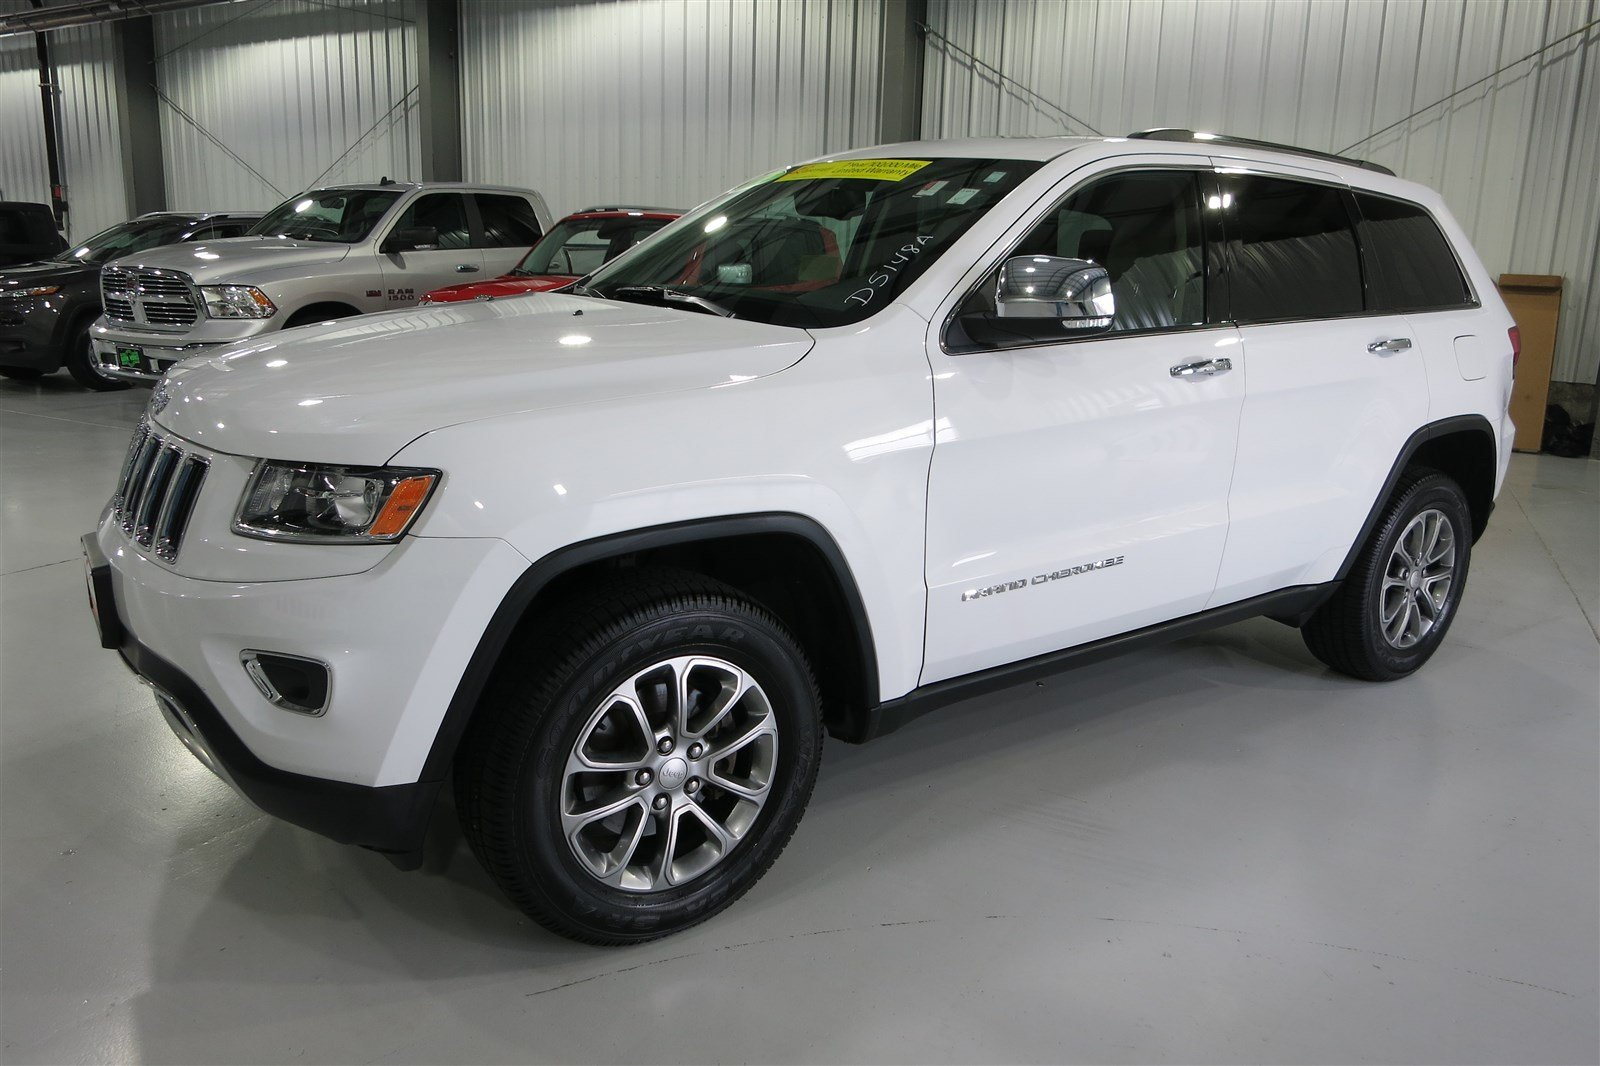 pre owned 2014 jeep grand cherokee limited sport utility in marshfield d5148a quirk chrysler. Black Bedroom Furniture Sets. Home Design Ideas